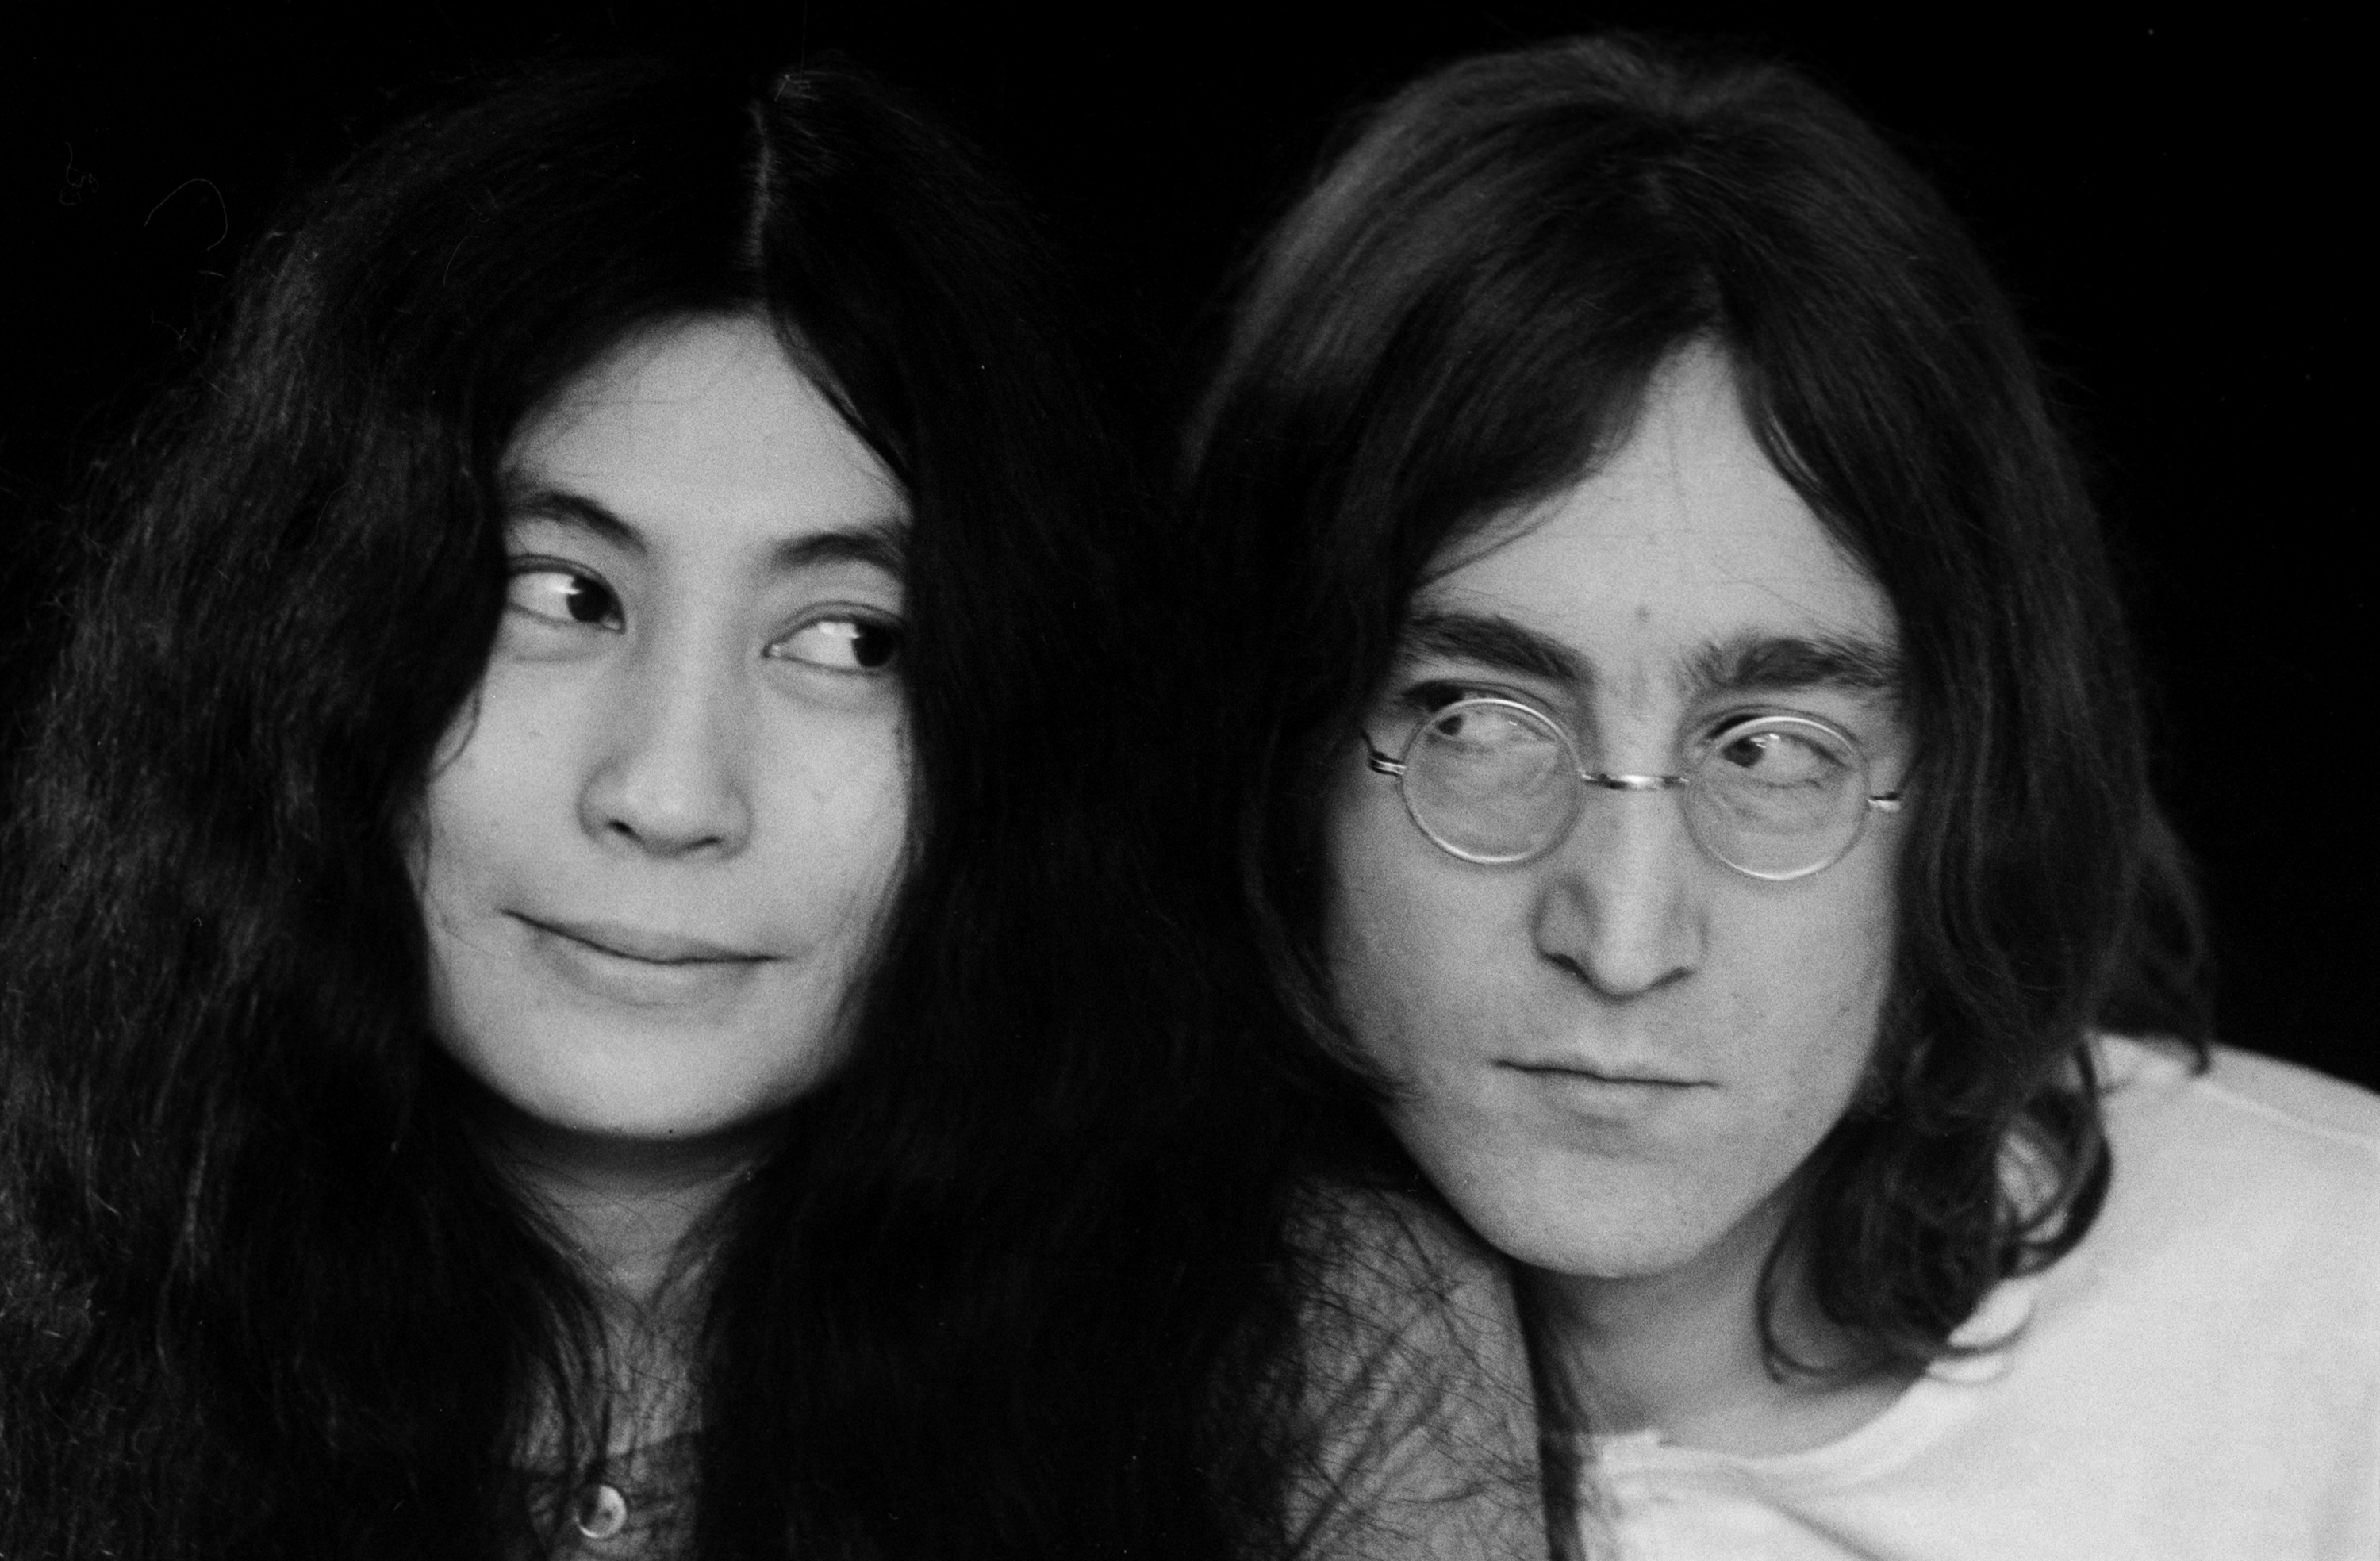 Relive an era of American history in Right On! The Lennon Years, Photographs by Susan Wood 1968 – 1978